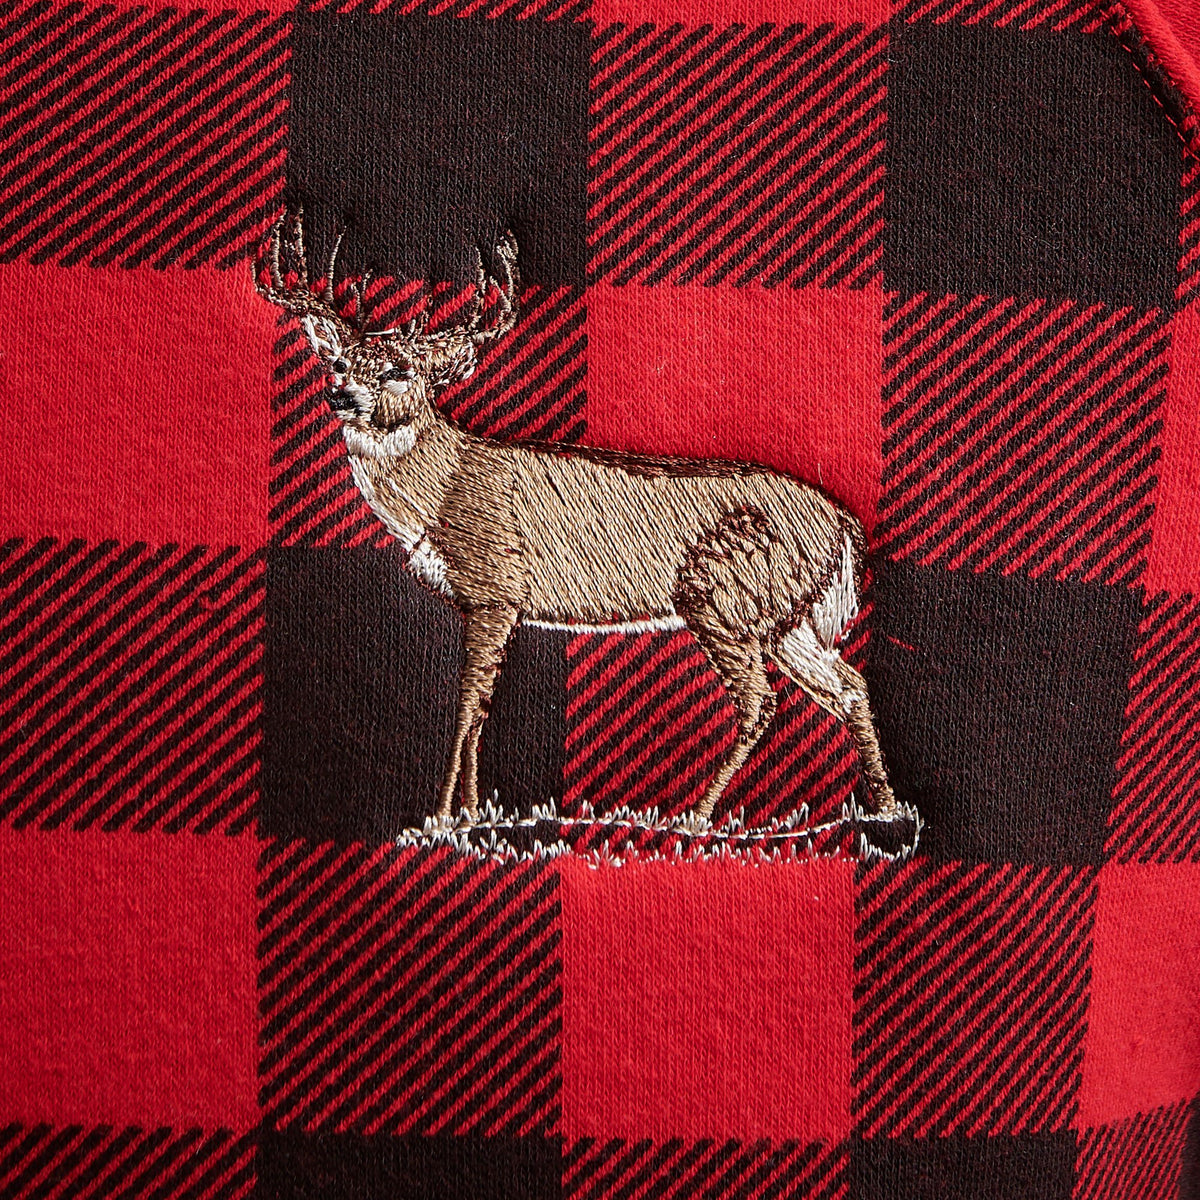 Red Plaid Whitetail Deer.